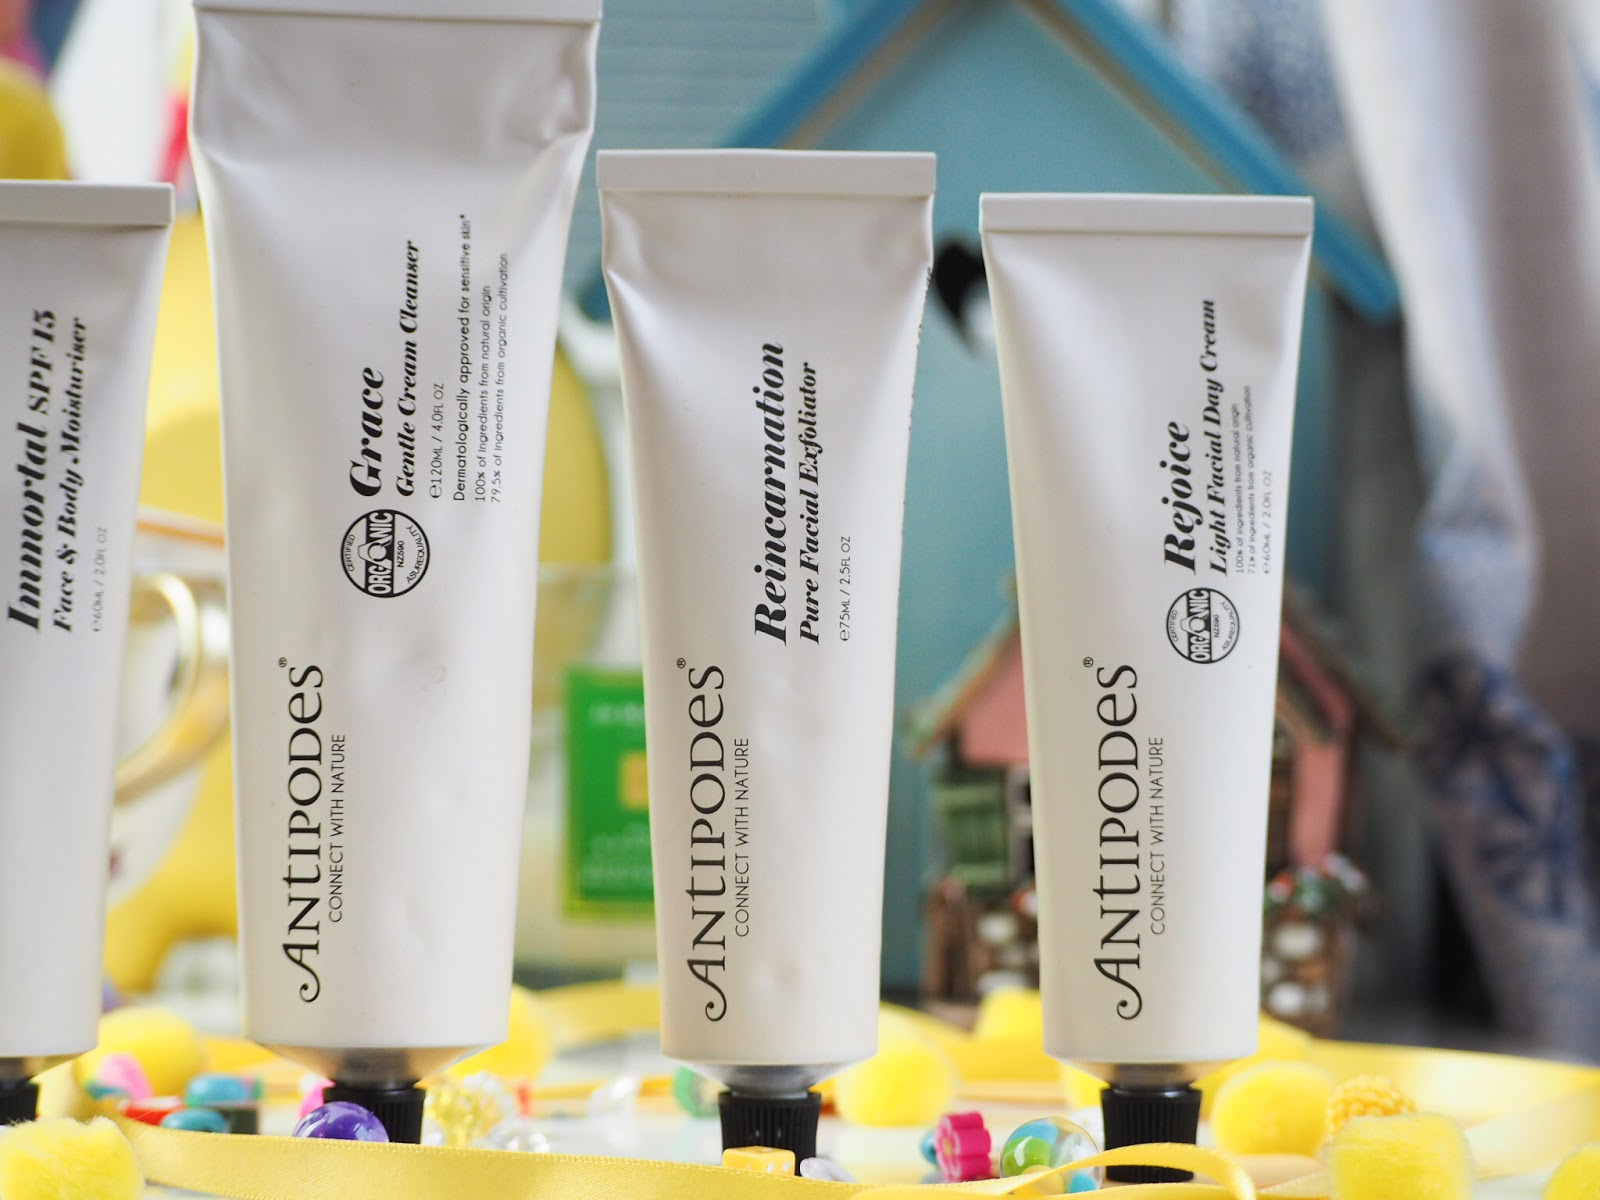 First Impressions: Antipodes Skincare* reincarnation, rejoice, grace, immortal